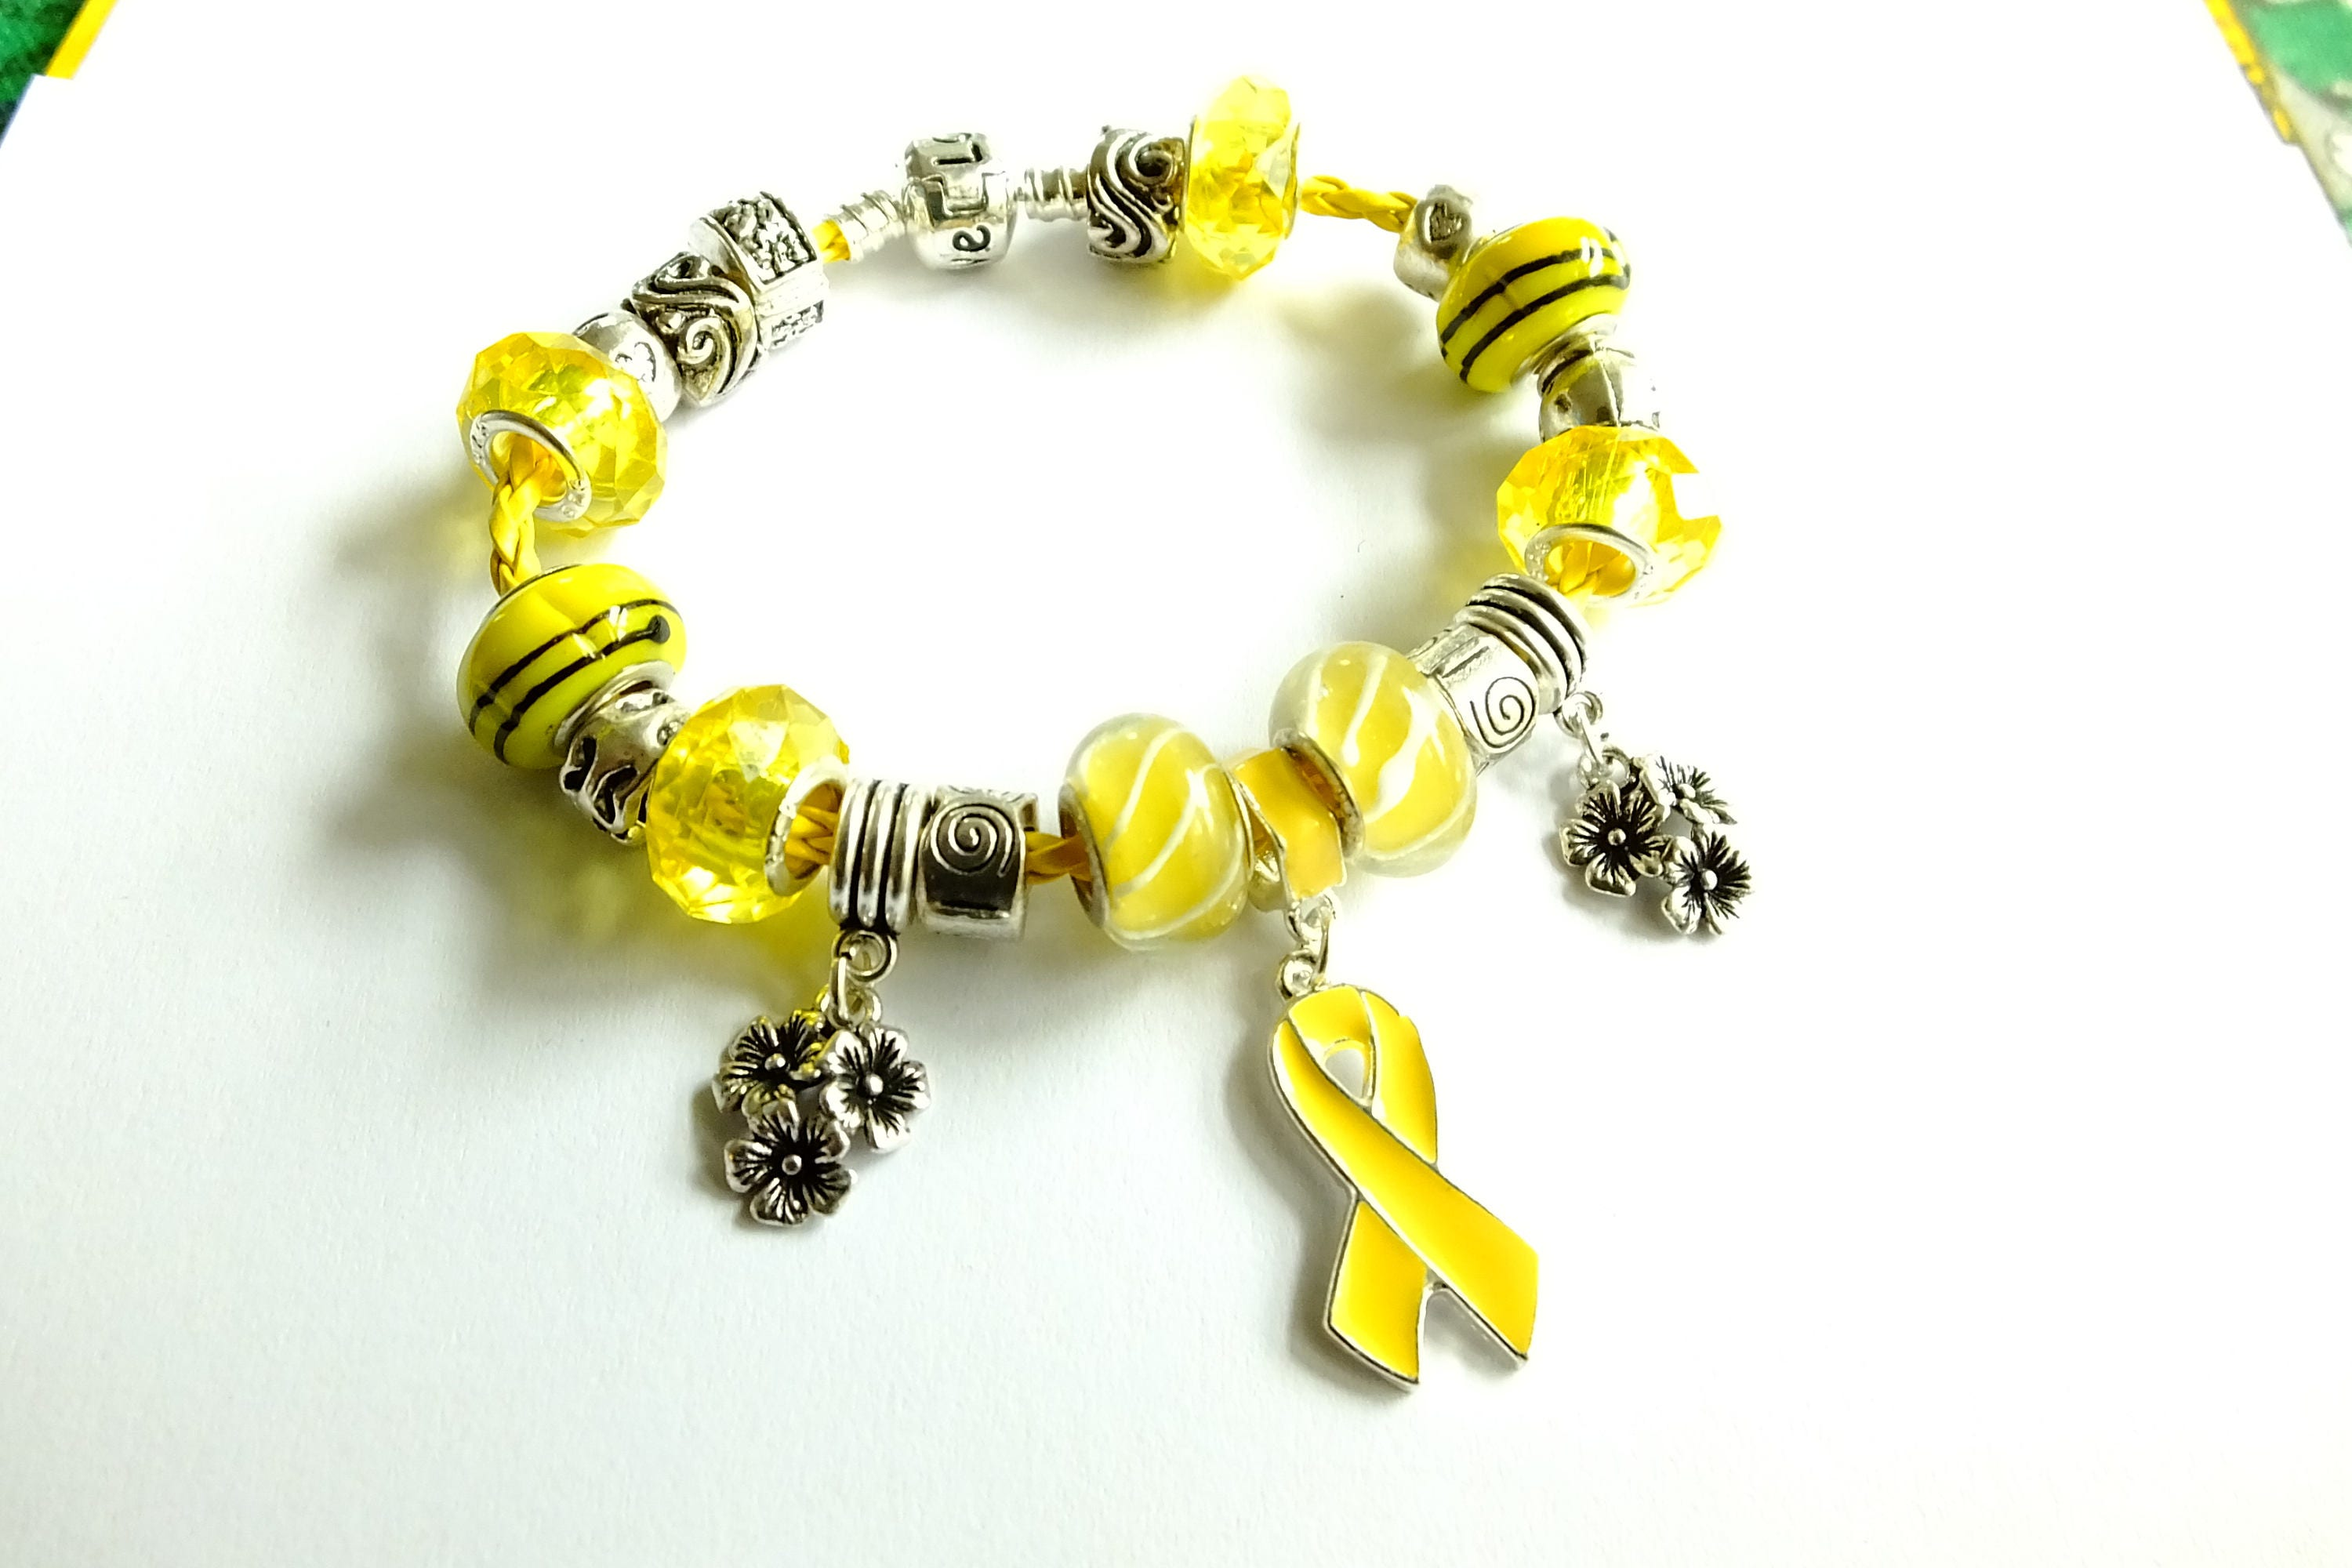 bifida gift by pin endometriosis adenosarcoma bracelet lung liver ribbon charm spina lotus white elephant yellow survivor eye osteosarcoma bladder hamsa awareness cancer